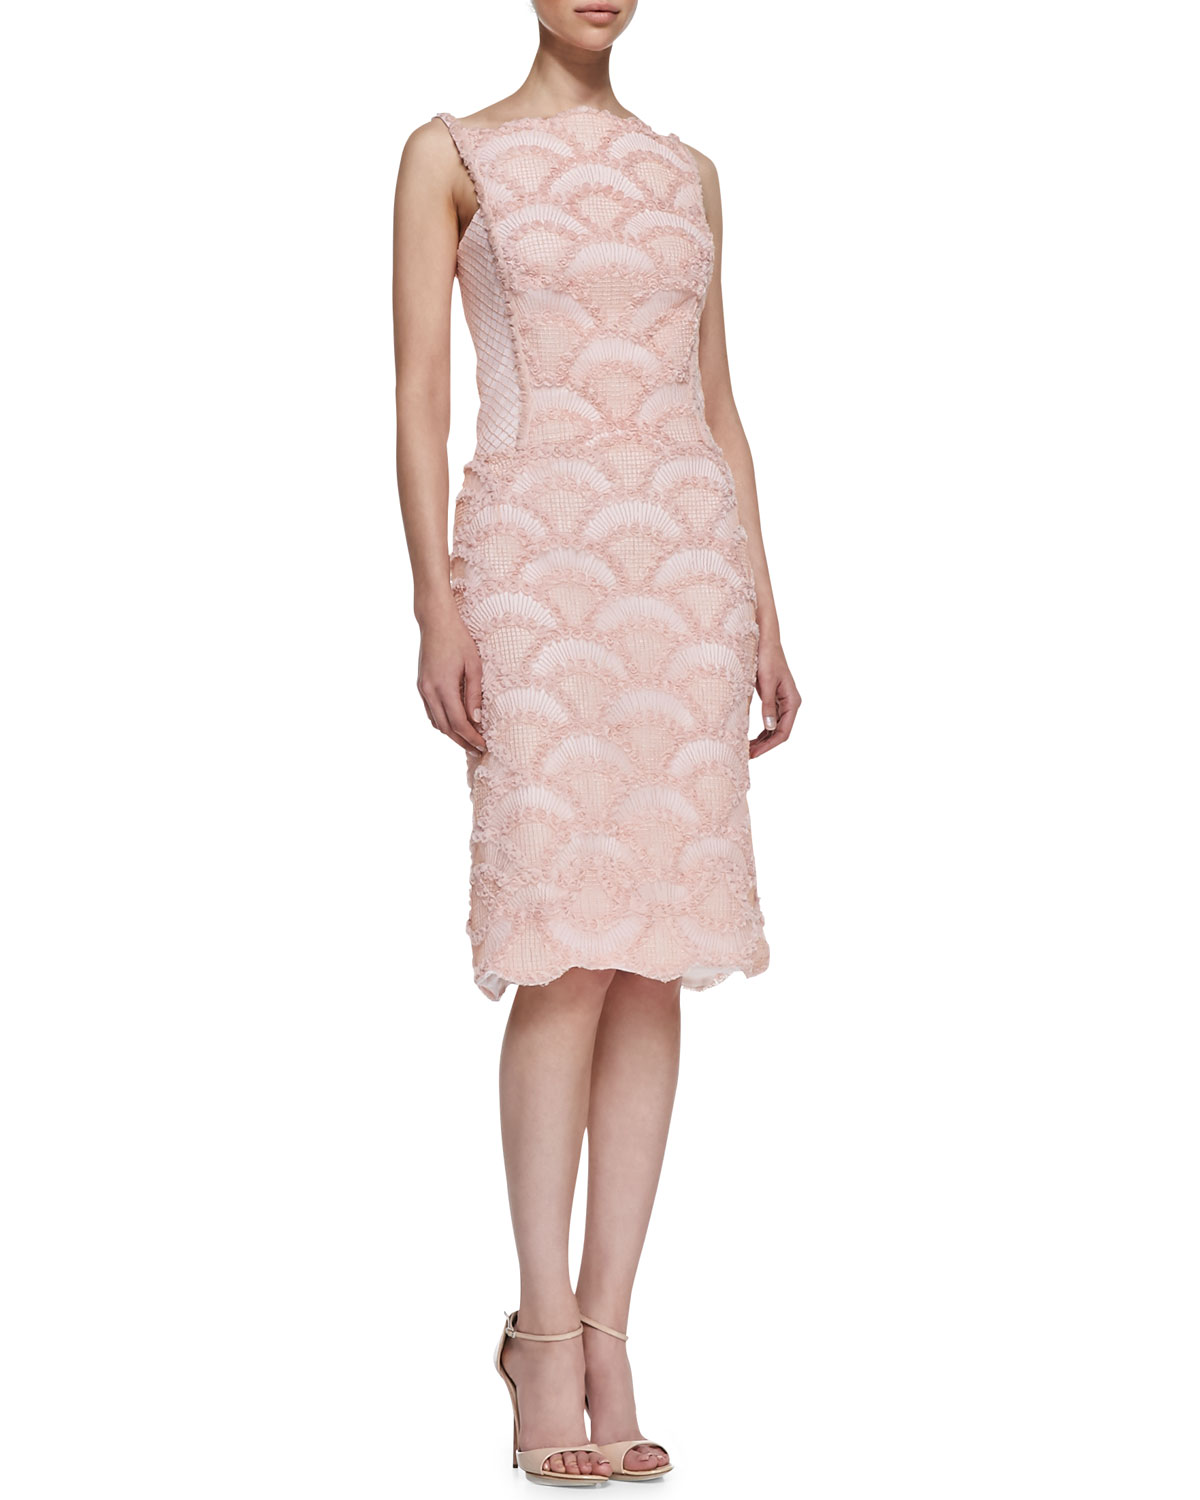 Tadashi Shoji sleeveless light-pink lace dress ($368)